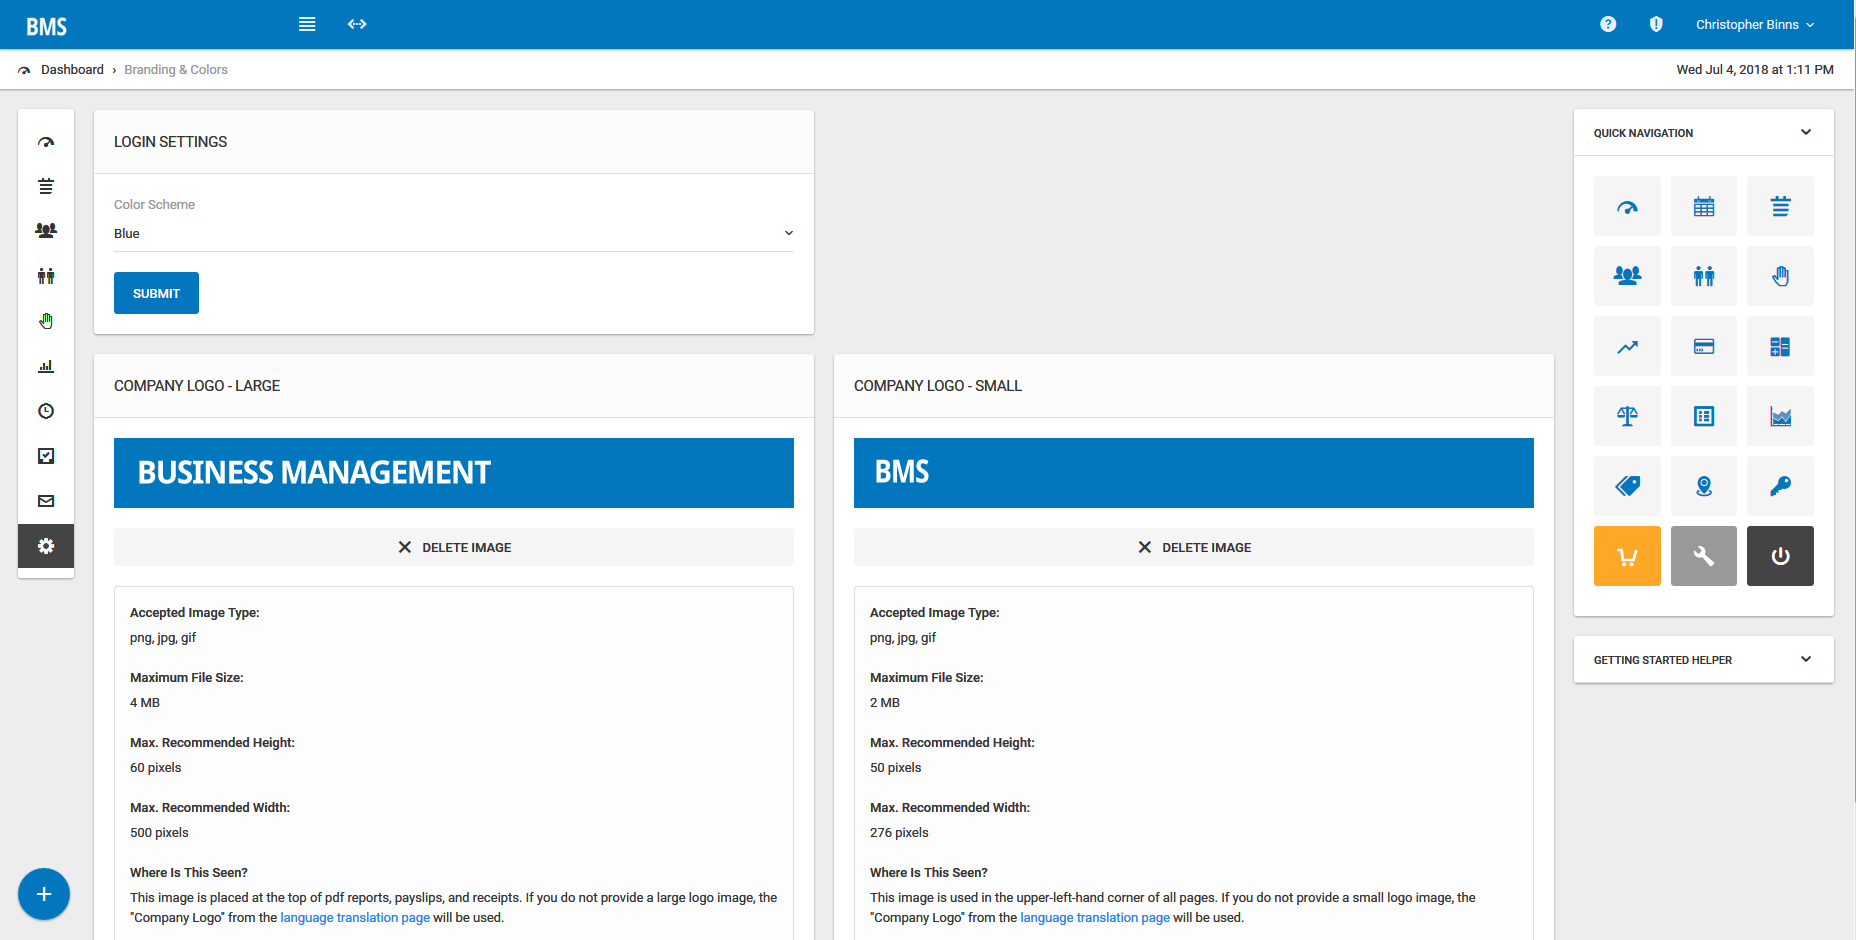 Customize the branding, colors, and text of the Bizstim portal